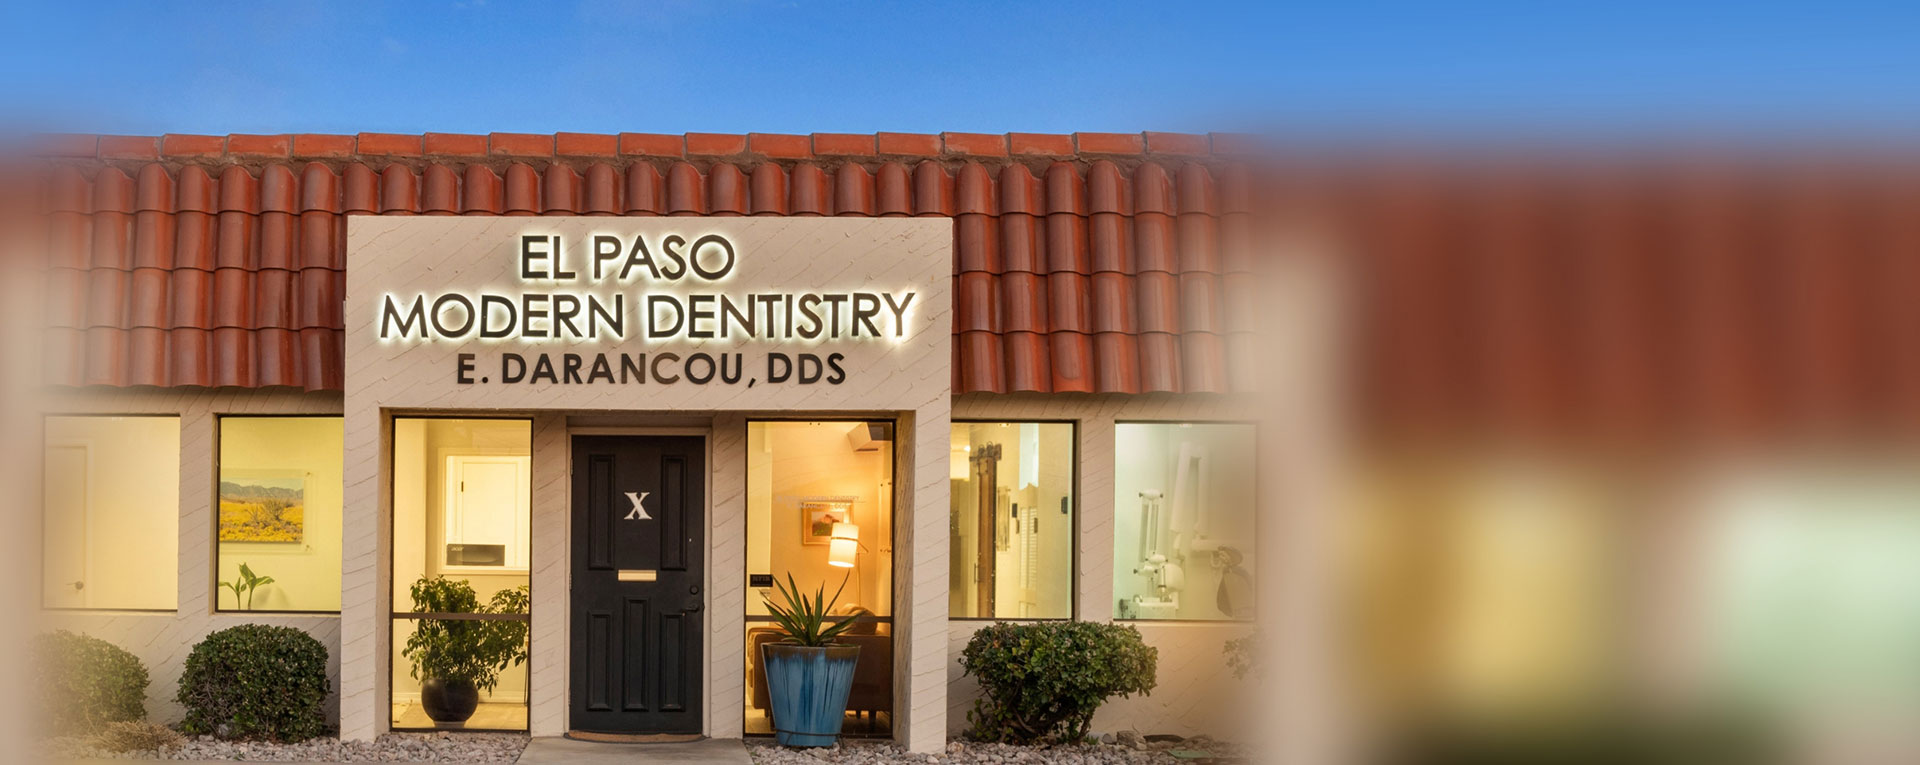 El Paso Modern Dentistry Front View